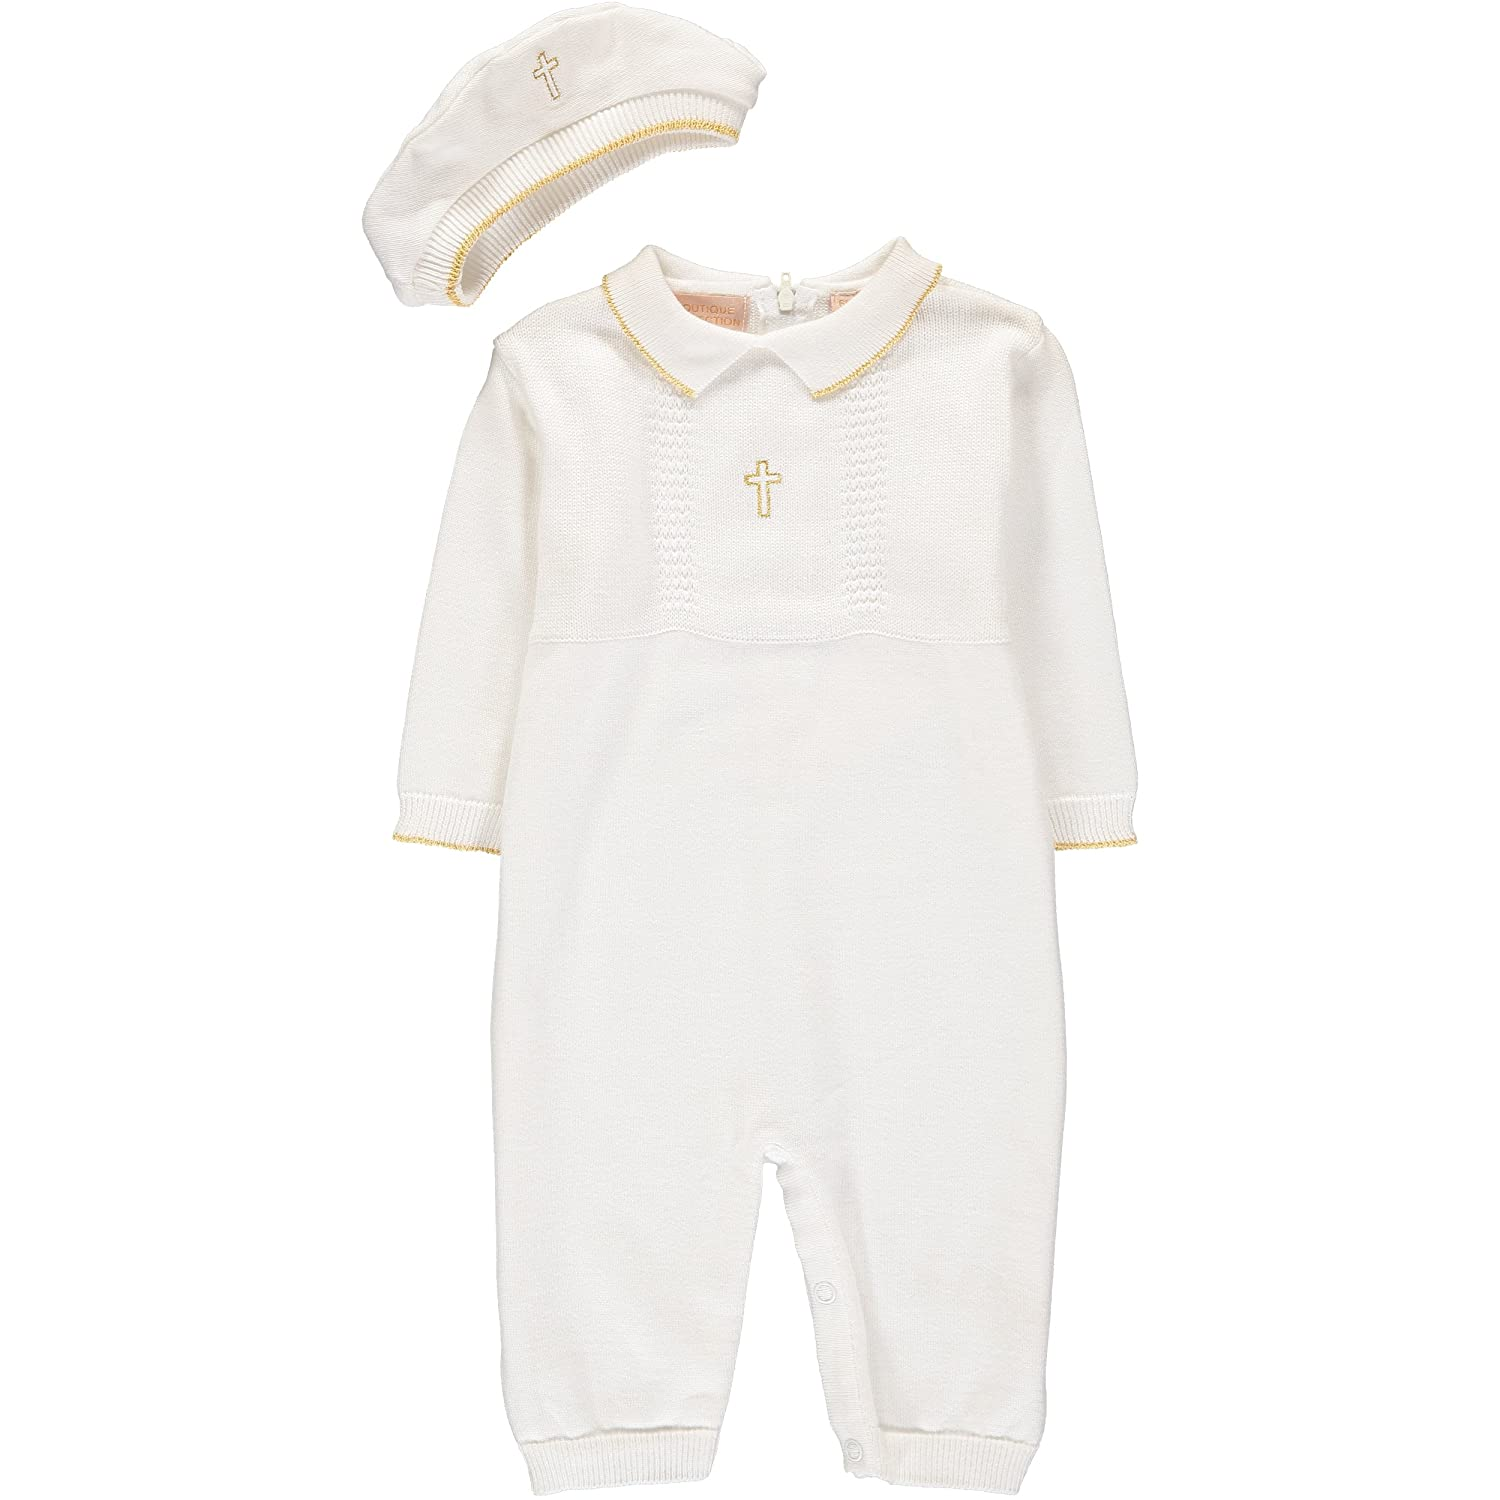 Boutique Collection Baby Christening Longall with Hat - Cross Detail 4003-White-N